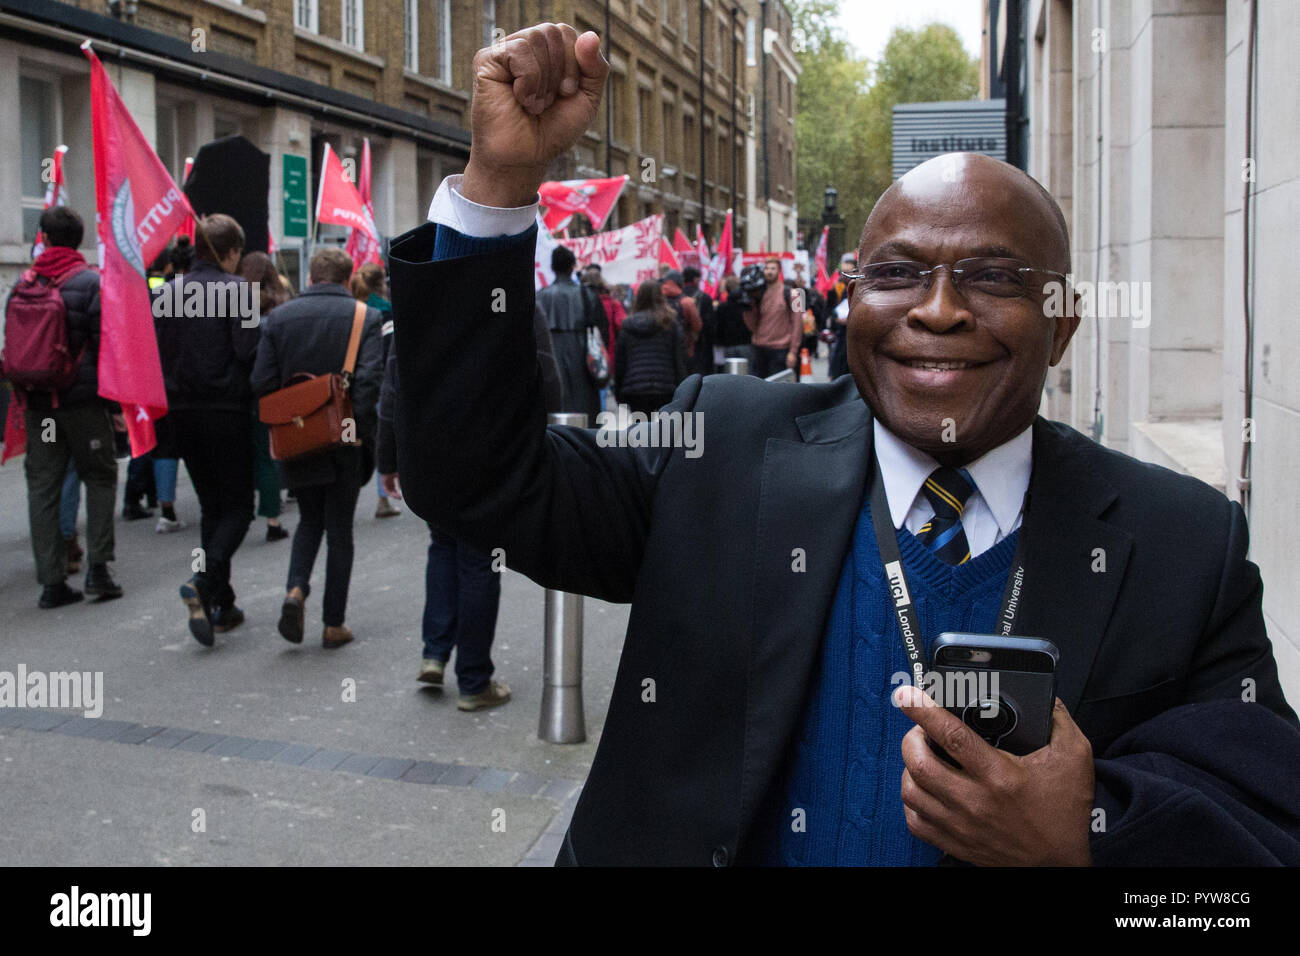 London, UK. 30th October, 2018. A man shows his support for members and supporters of the Independent Workers of Great Britain (IWGB) trade union marching together with other precarious workers from the offices of Transport for London to the University of London via the Court of Appeal in support of Uber drivers who are seeking employment rights. The Court of Appeal will today hear an appeal by Uber against a ruling that its drivers are employees rather than self-employed workers. Credit: Mark Kerrison/Alamy Live News - Stock Image